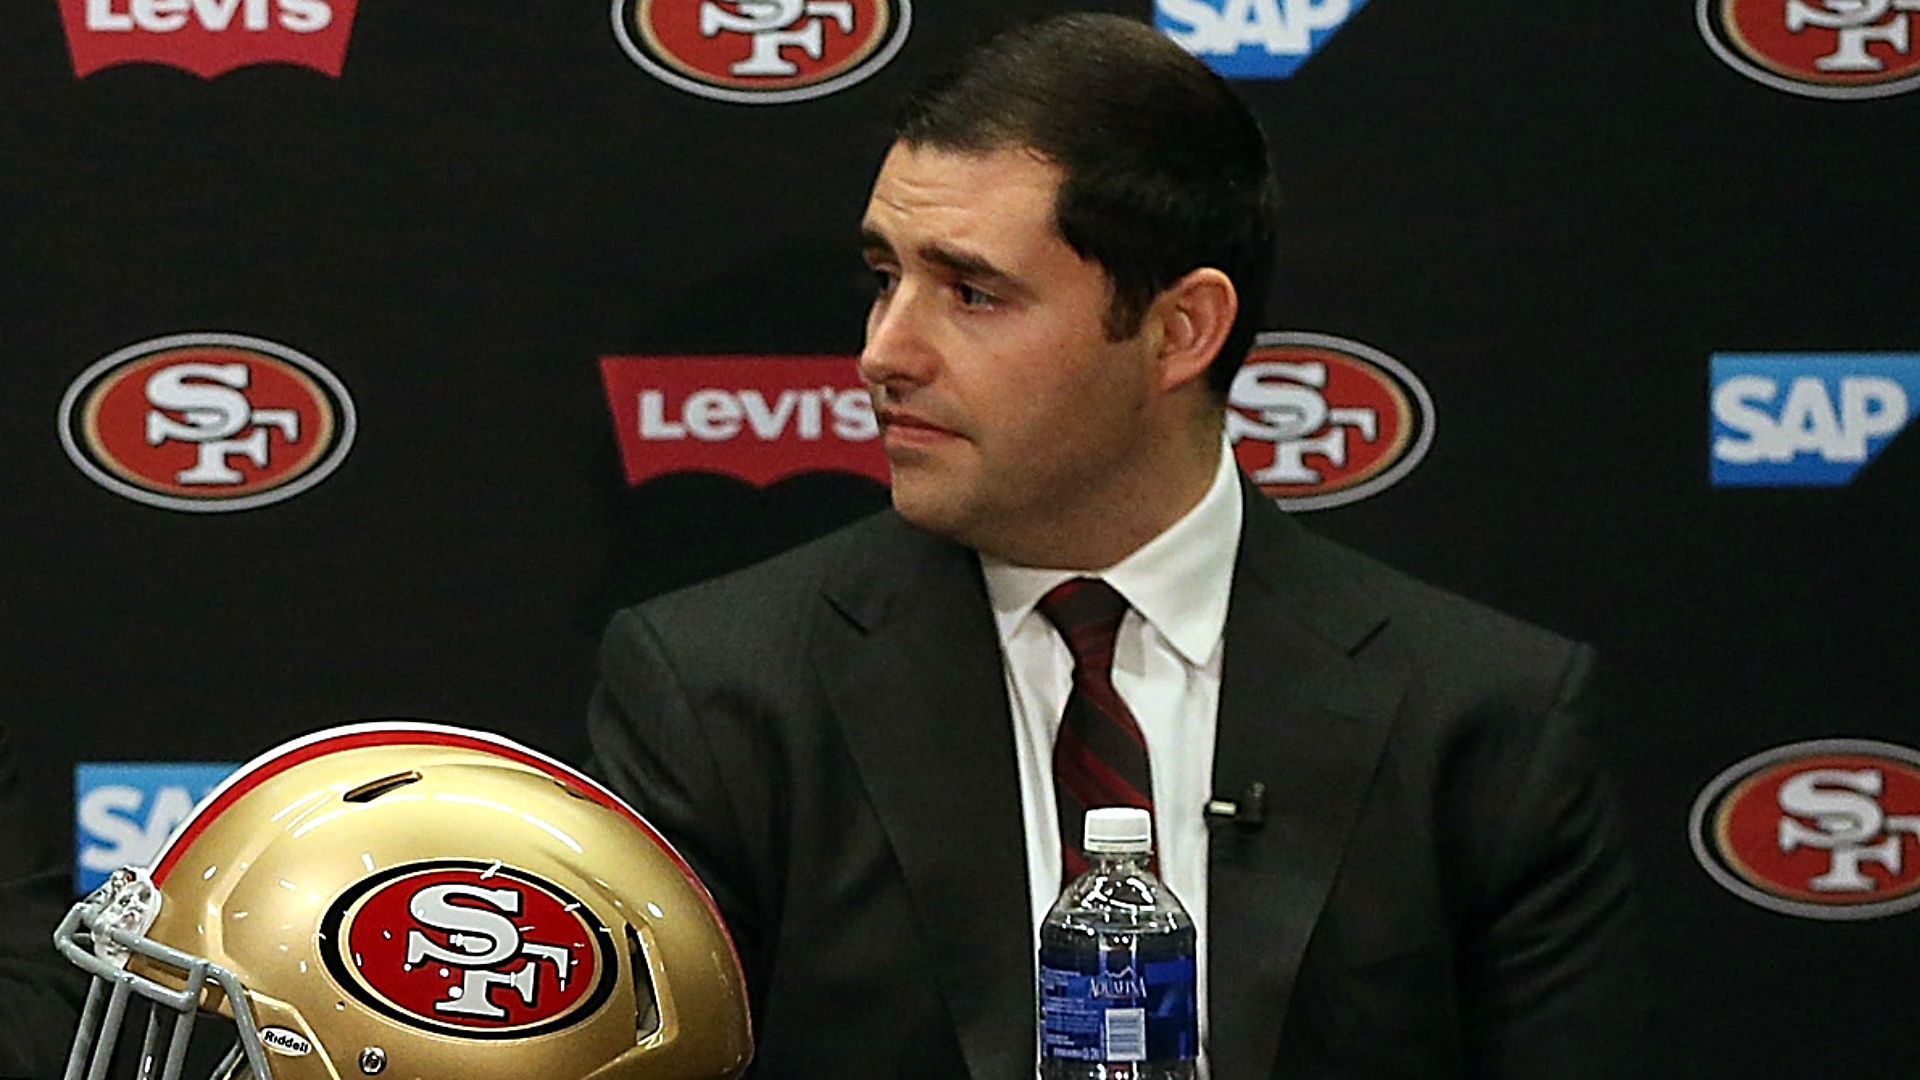 49ers Players on Board With York's Plan to Build 'winning Culture'